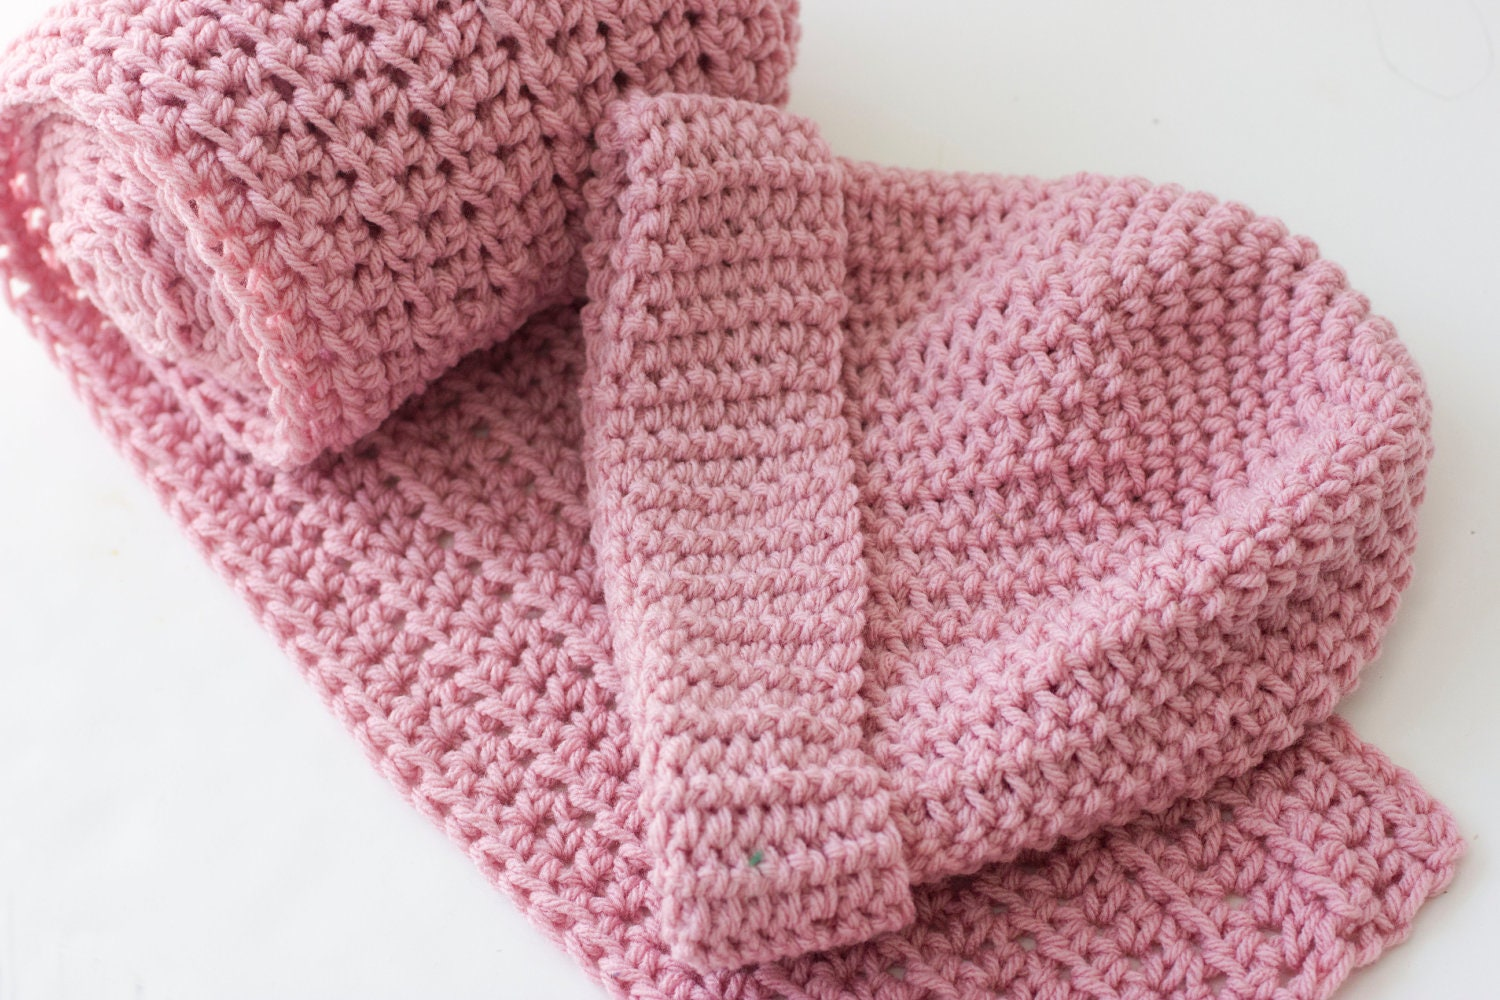 Pink Hat Scarf Set Crochet Hat and Matching Scarf Vegan Winter  Crochet Hats And Scarves For Kids